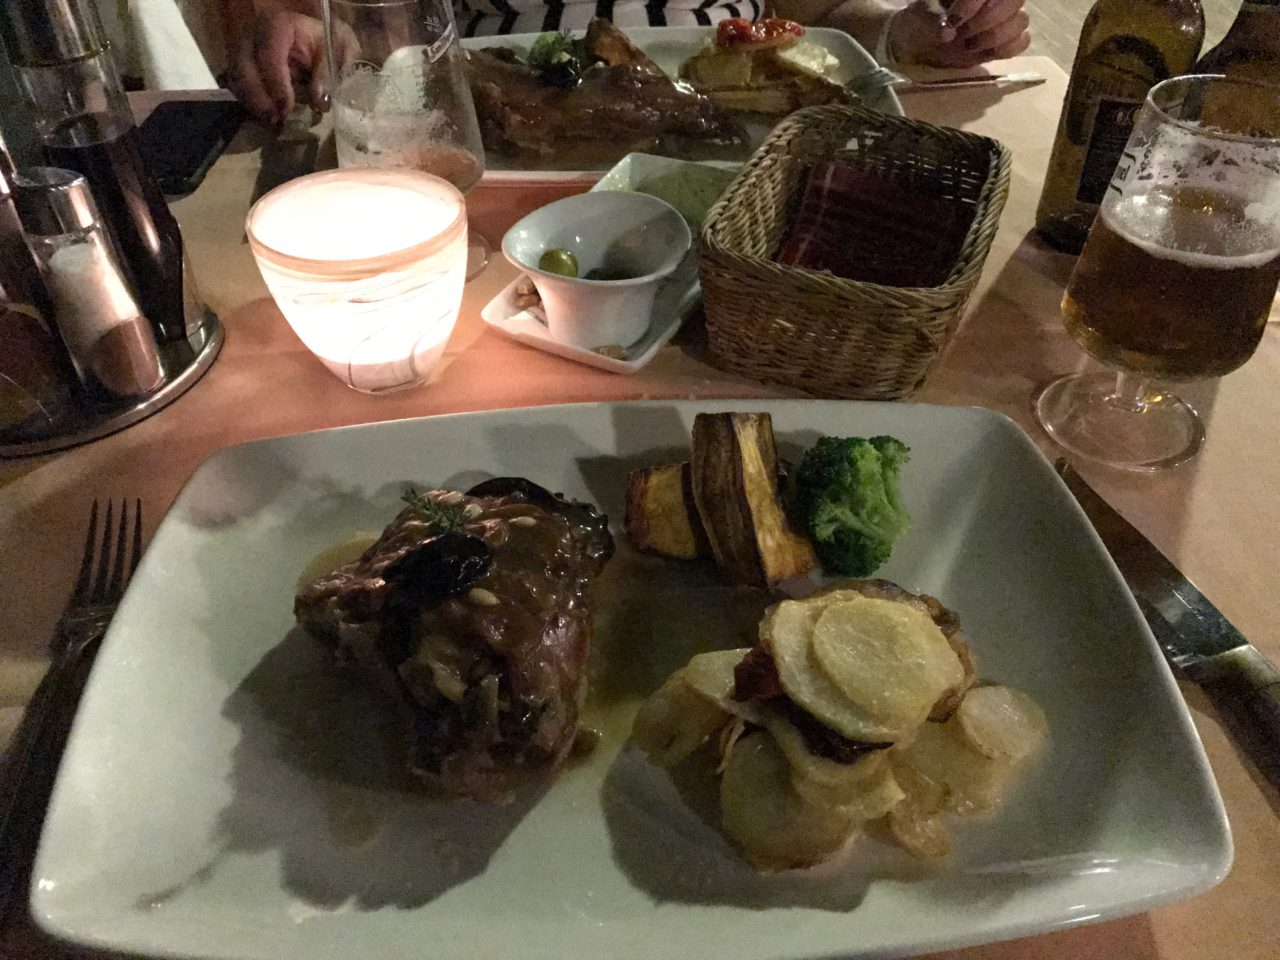 A Plate Of Steak And Potatoes On A Candle Lit Table